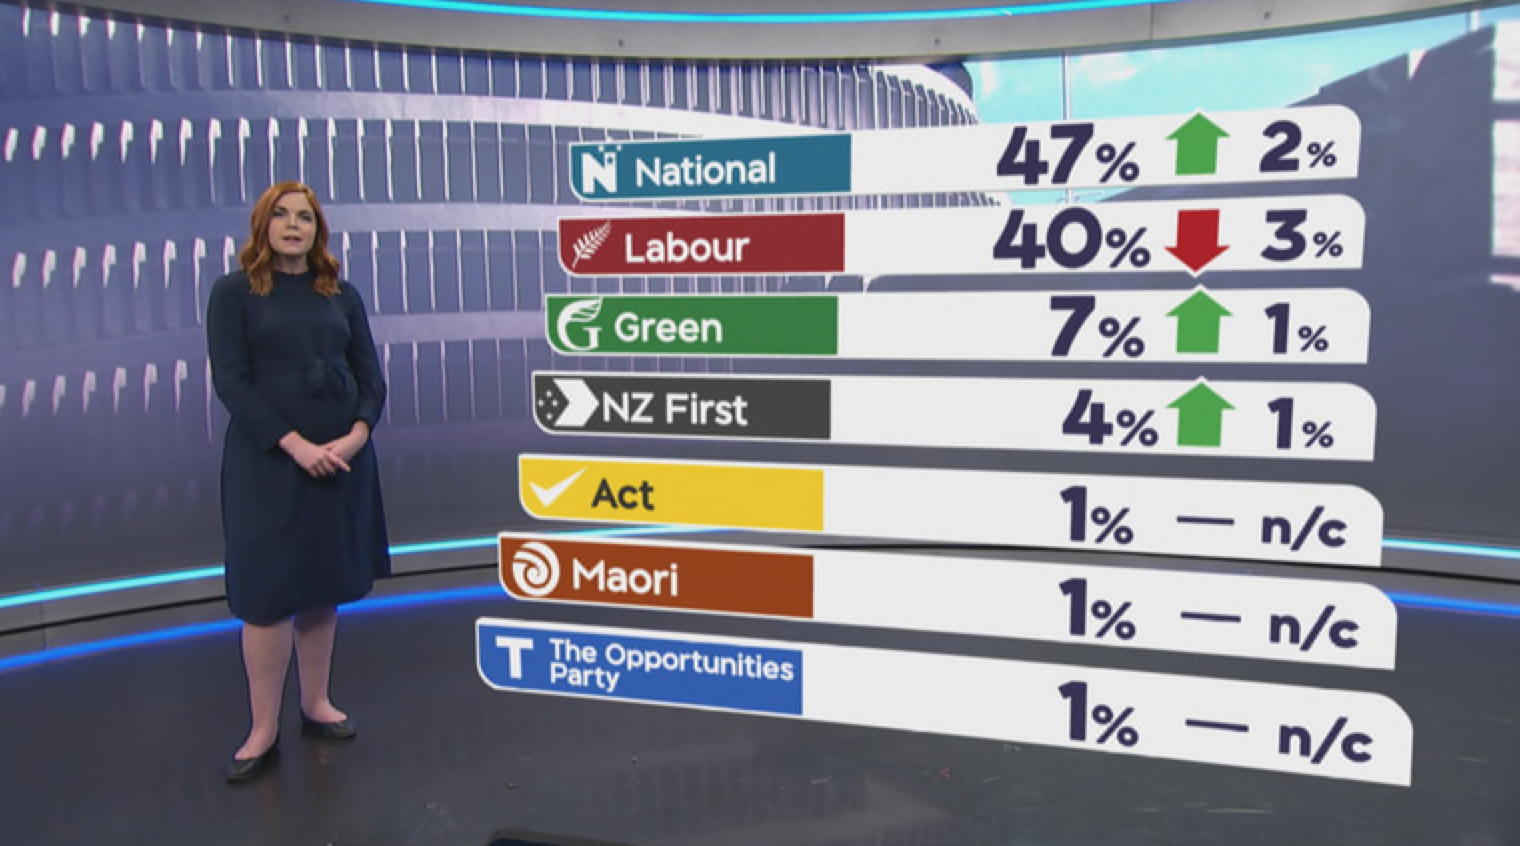 TVNZ POLL: National 47%, Labour 40%, Green 7%, NZ First 4% | The Daily Blog